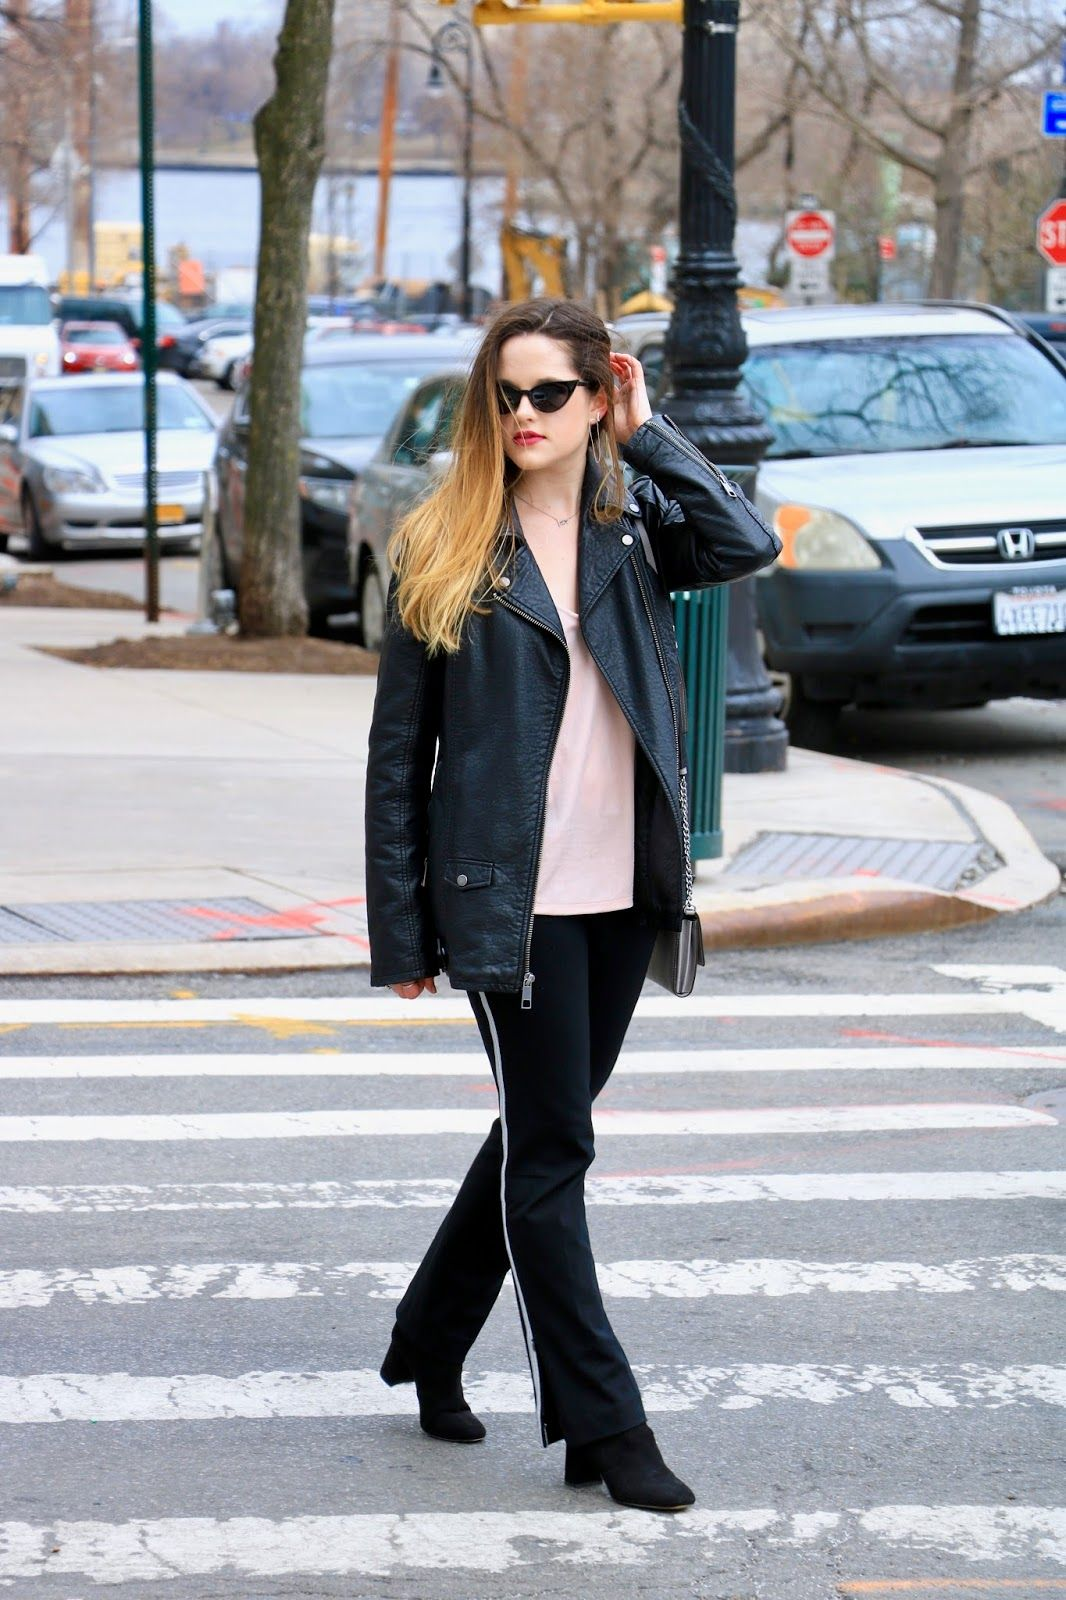 Nyc spring street style. Oversized leather jacket and